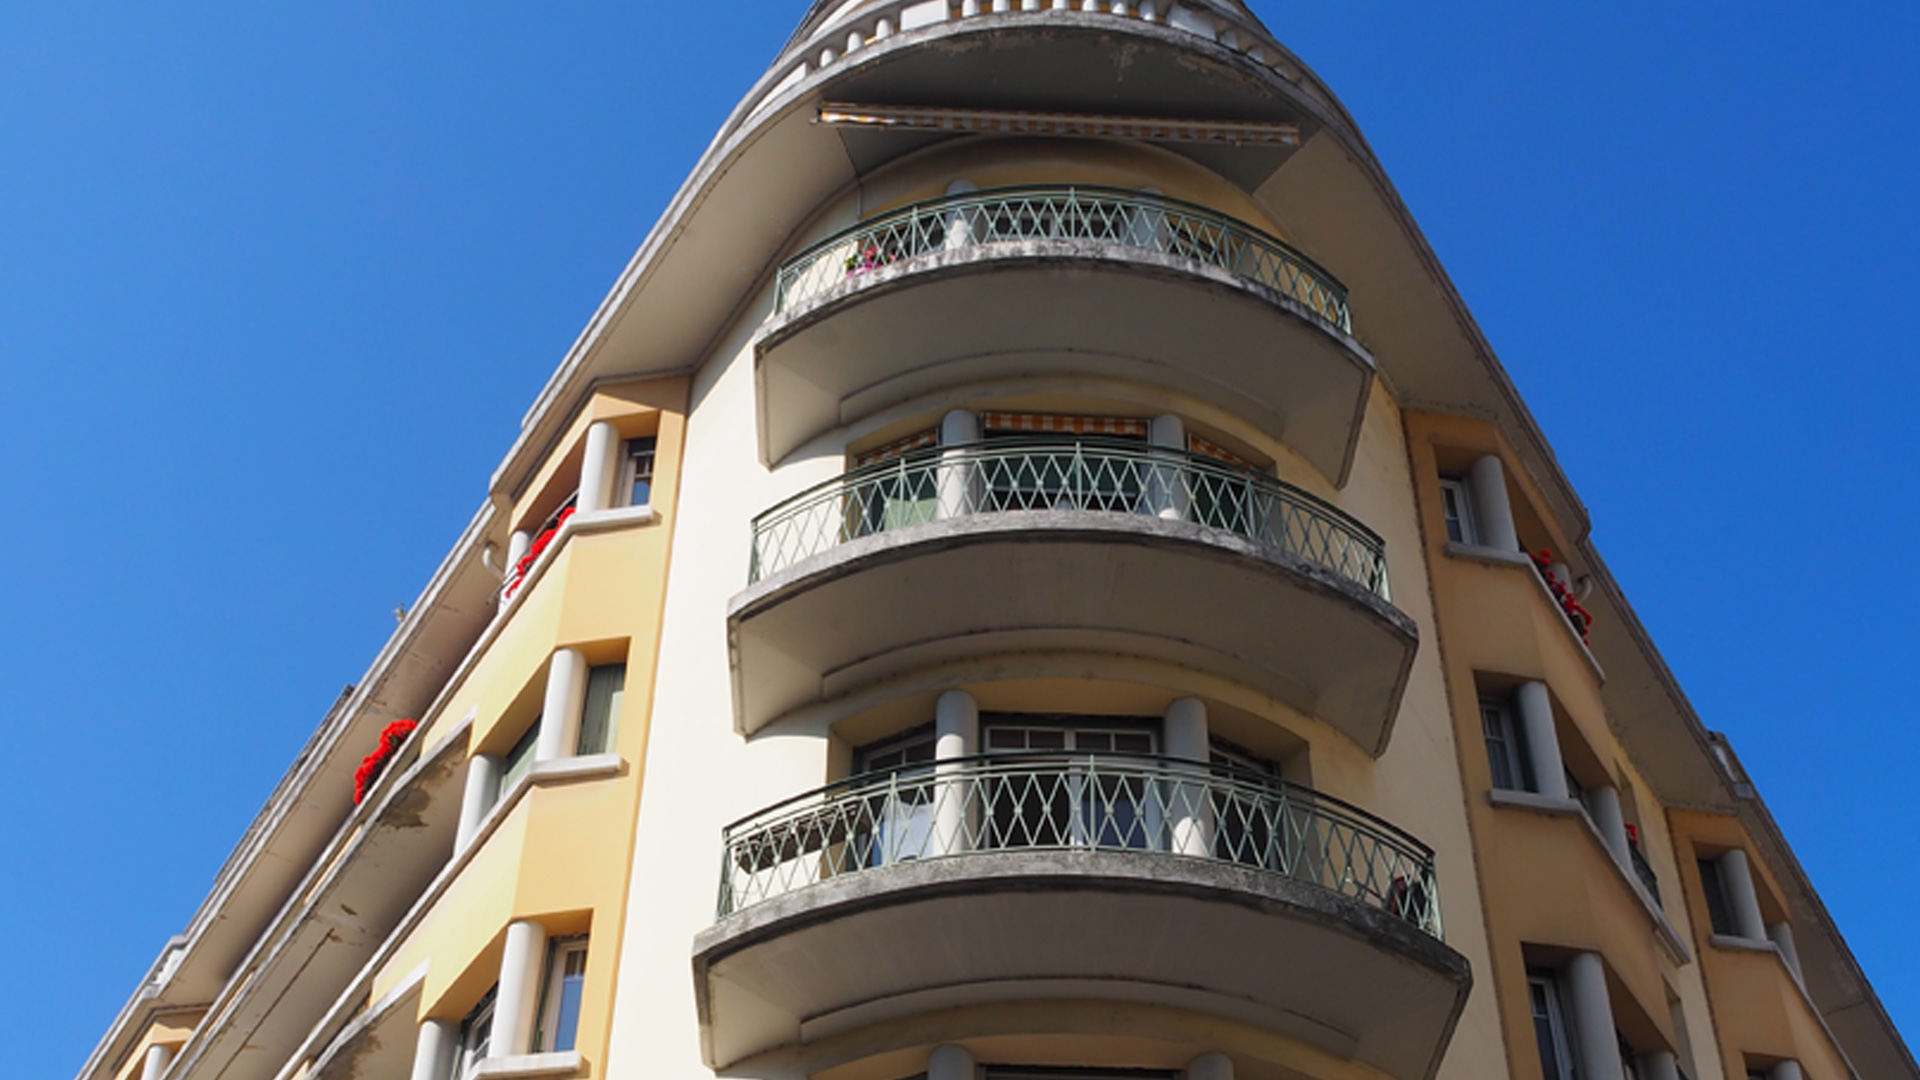 Itup vente appartements annecy appartement t3 hyper for Top garage annecy